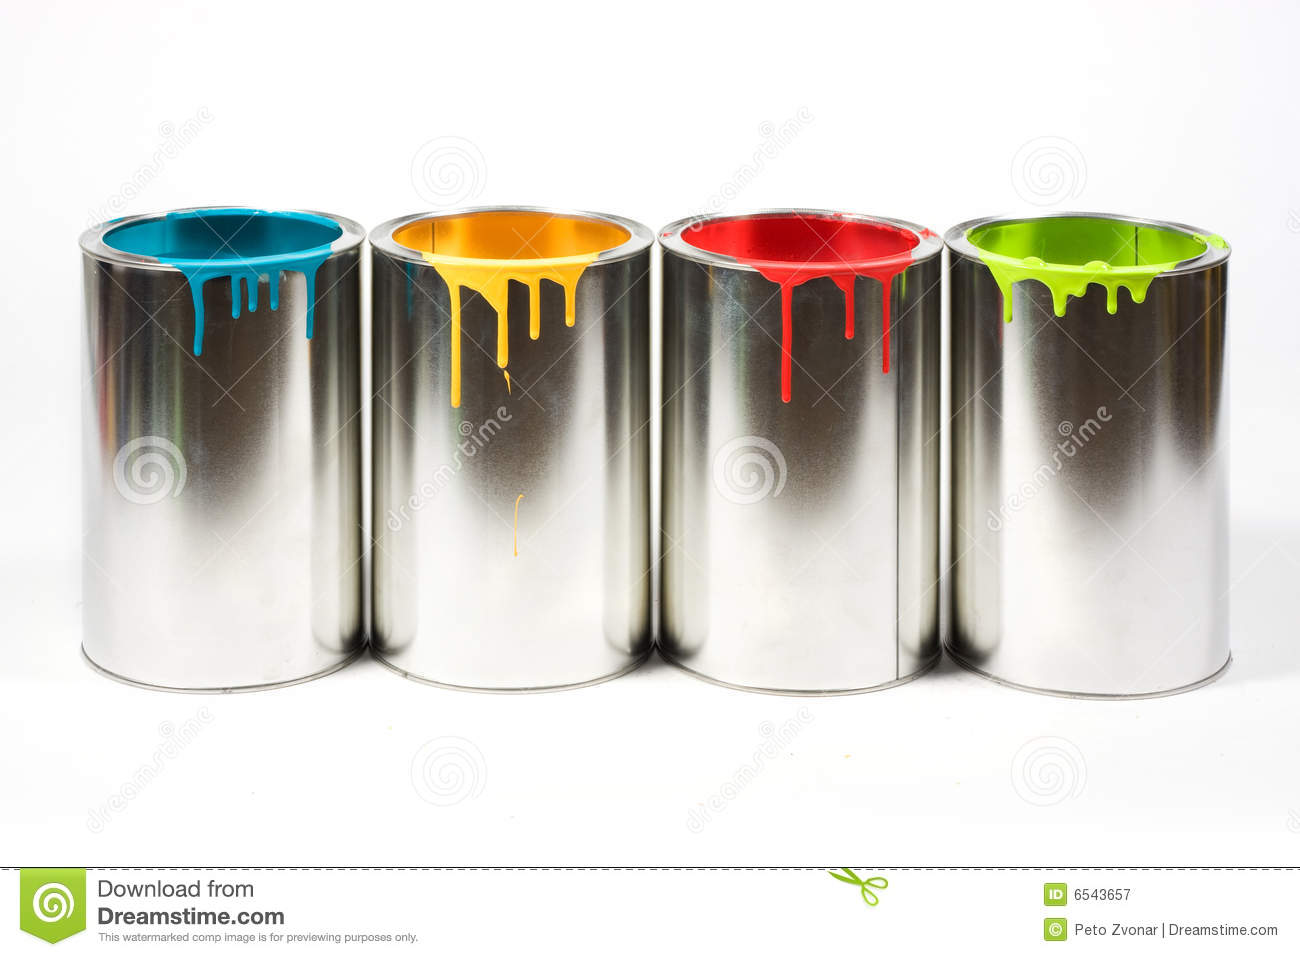 You searched for different yellow paint colors fun for Different yellow paint colors